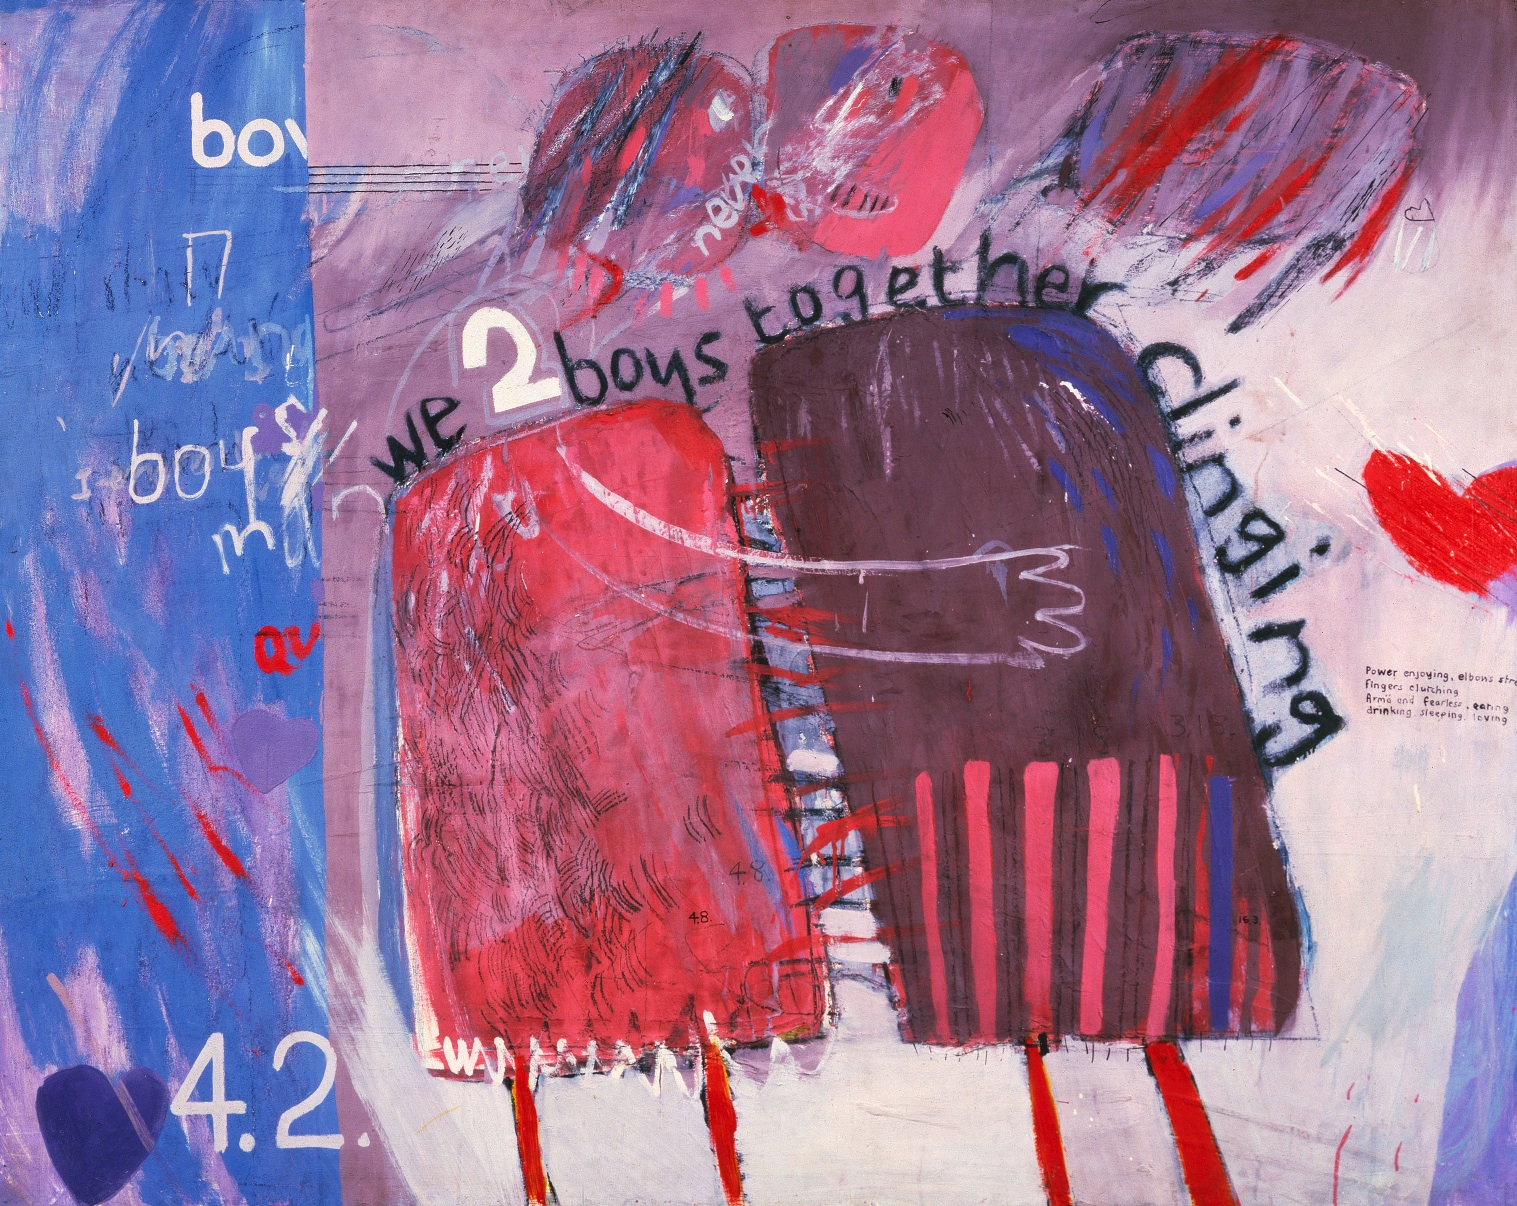 We Two Boys Together Clinging-David Hockney